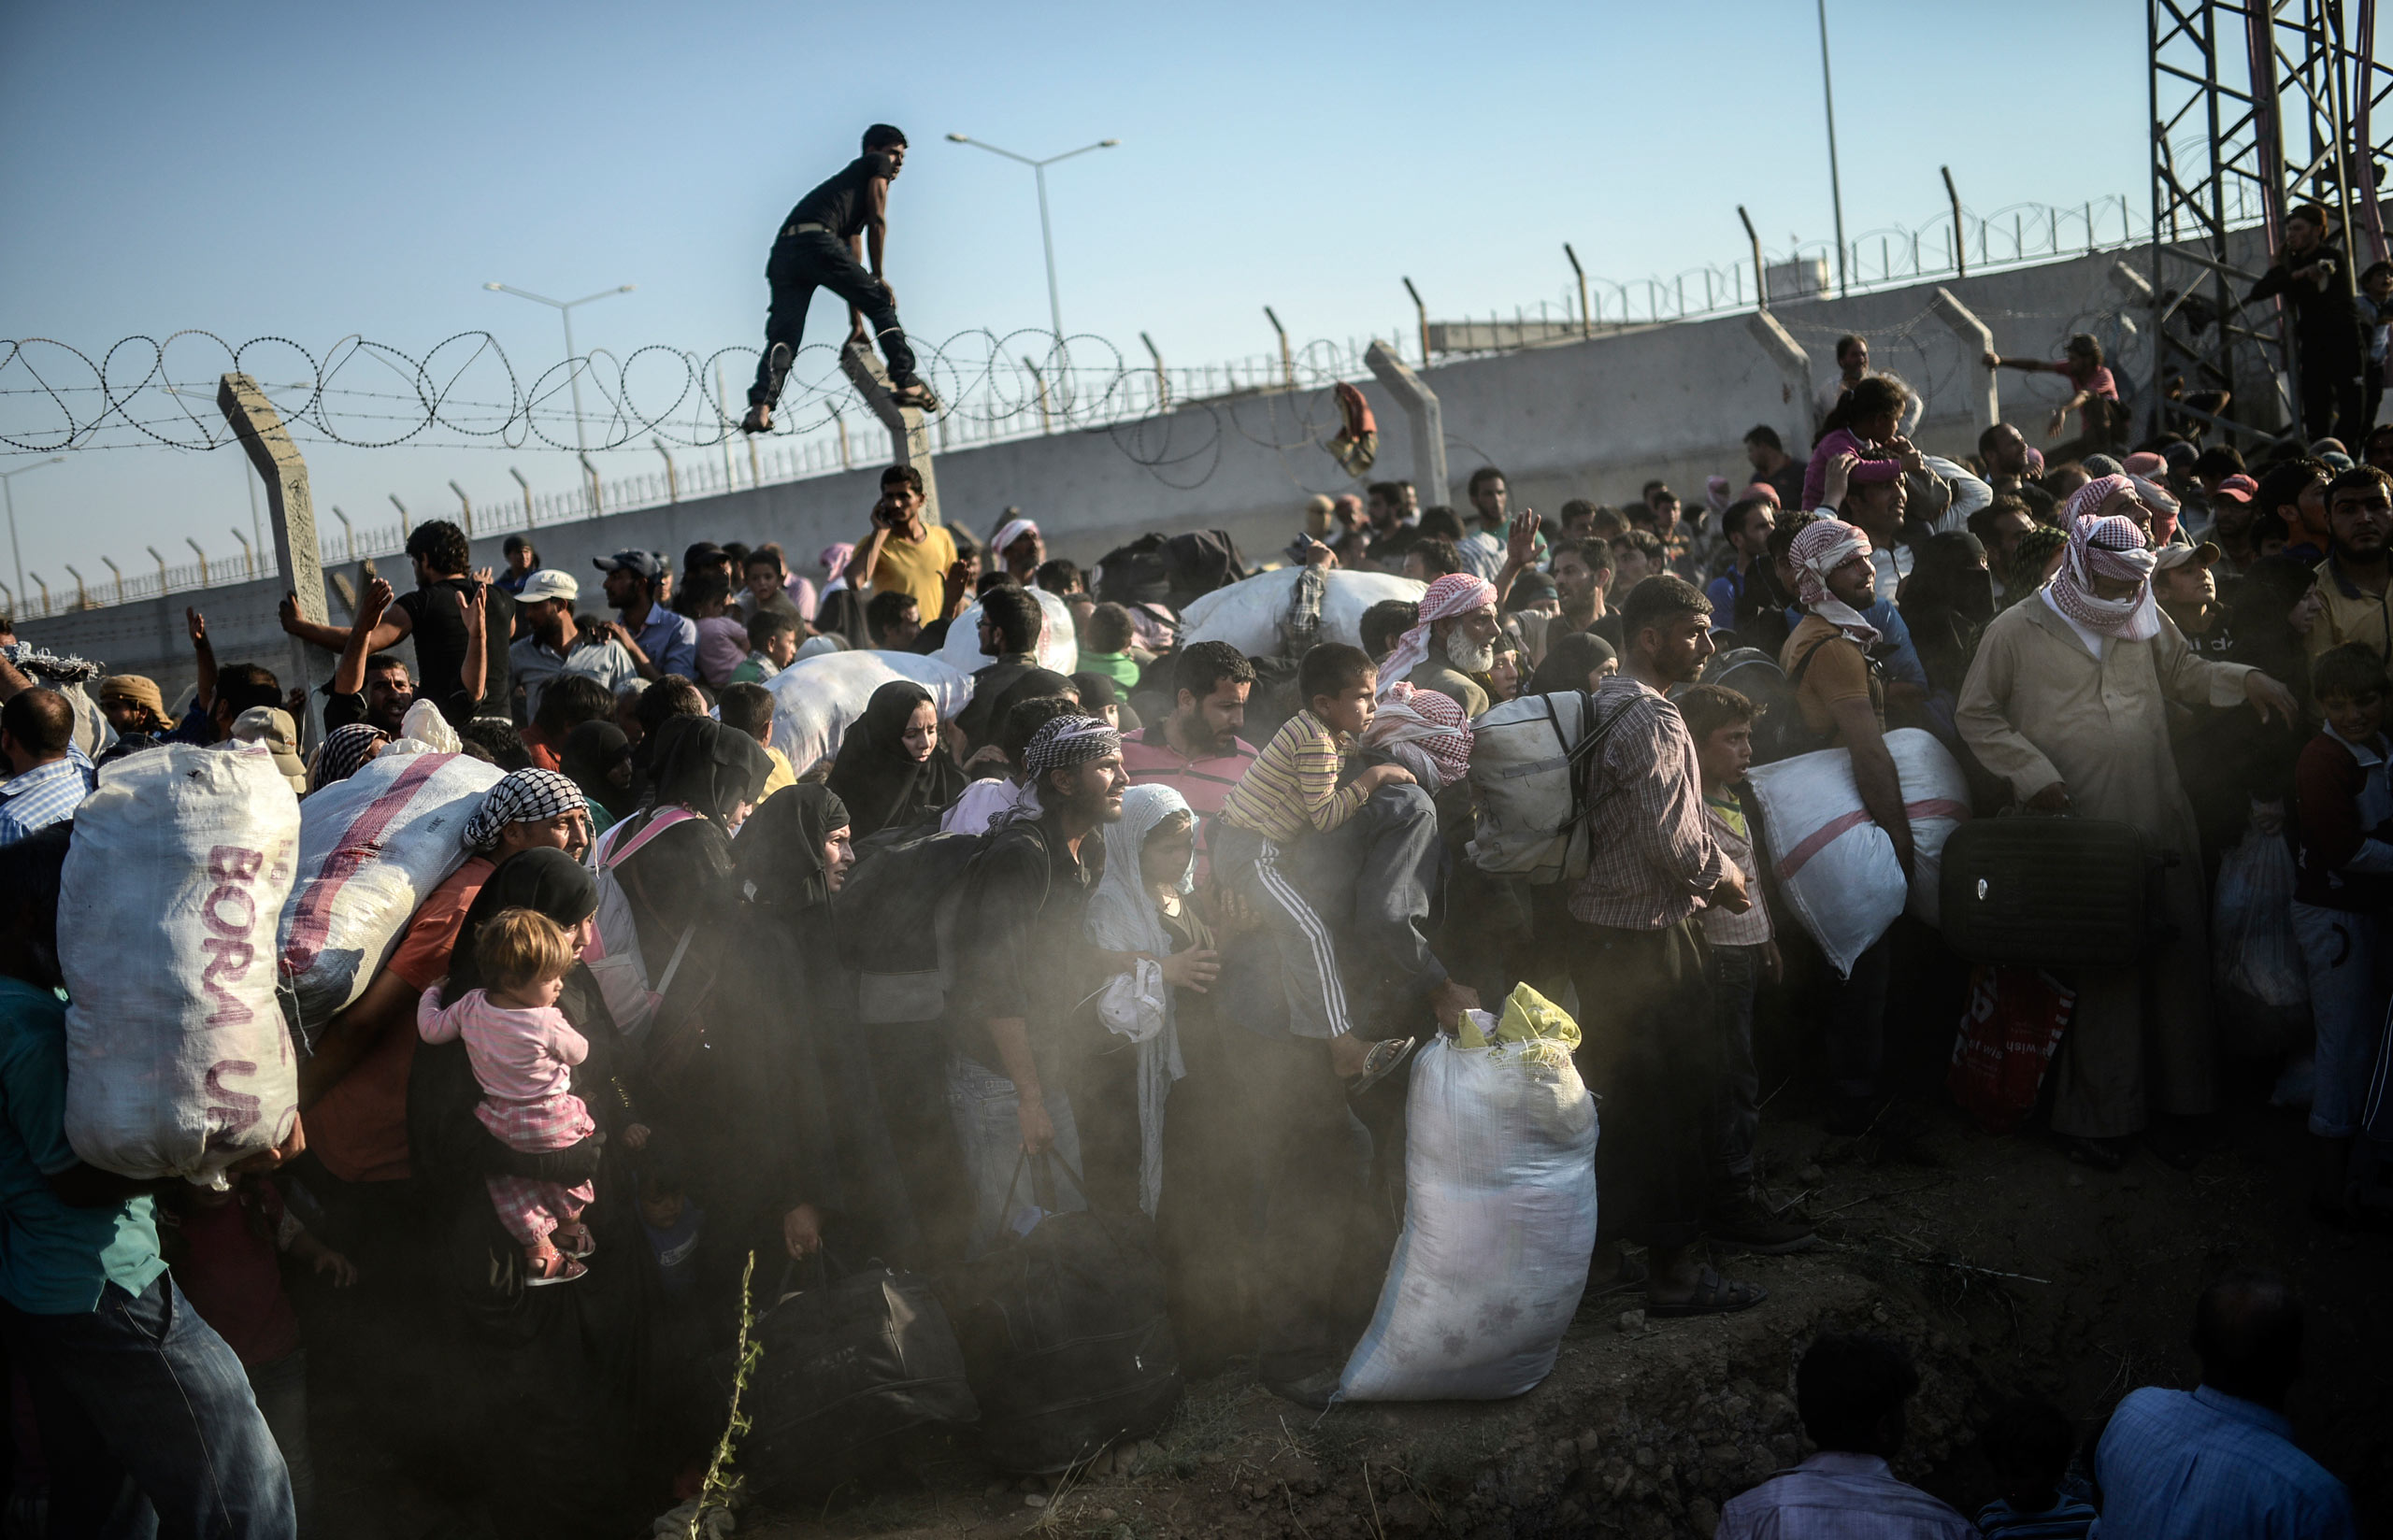 Syrians fleeing their war-torn country rush through the broken wire border fences entering illegally the Turkish territory, near the Turkish crossing gate in Akçakale, in the Şanlıurfa province. June 14, 2015.